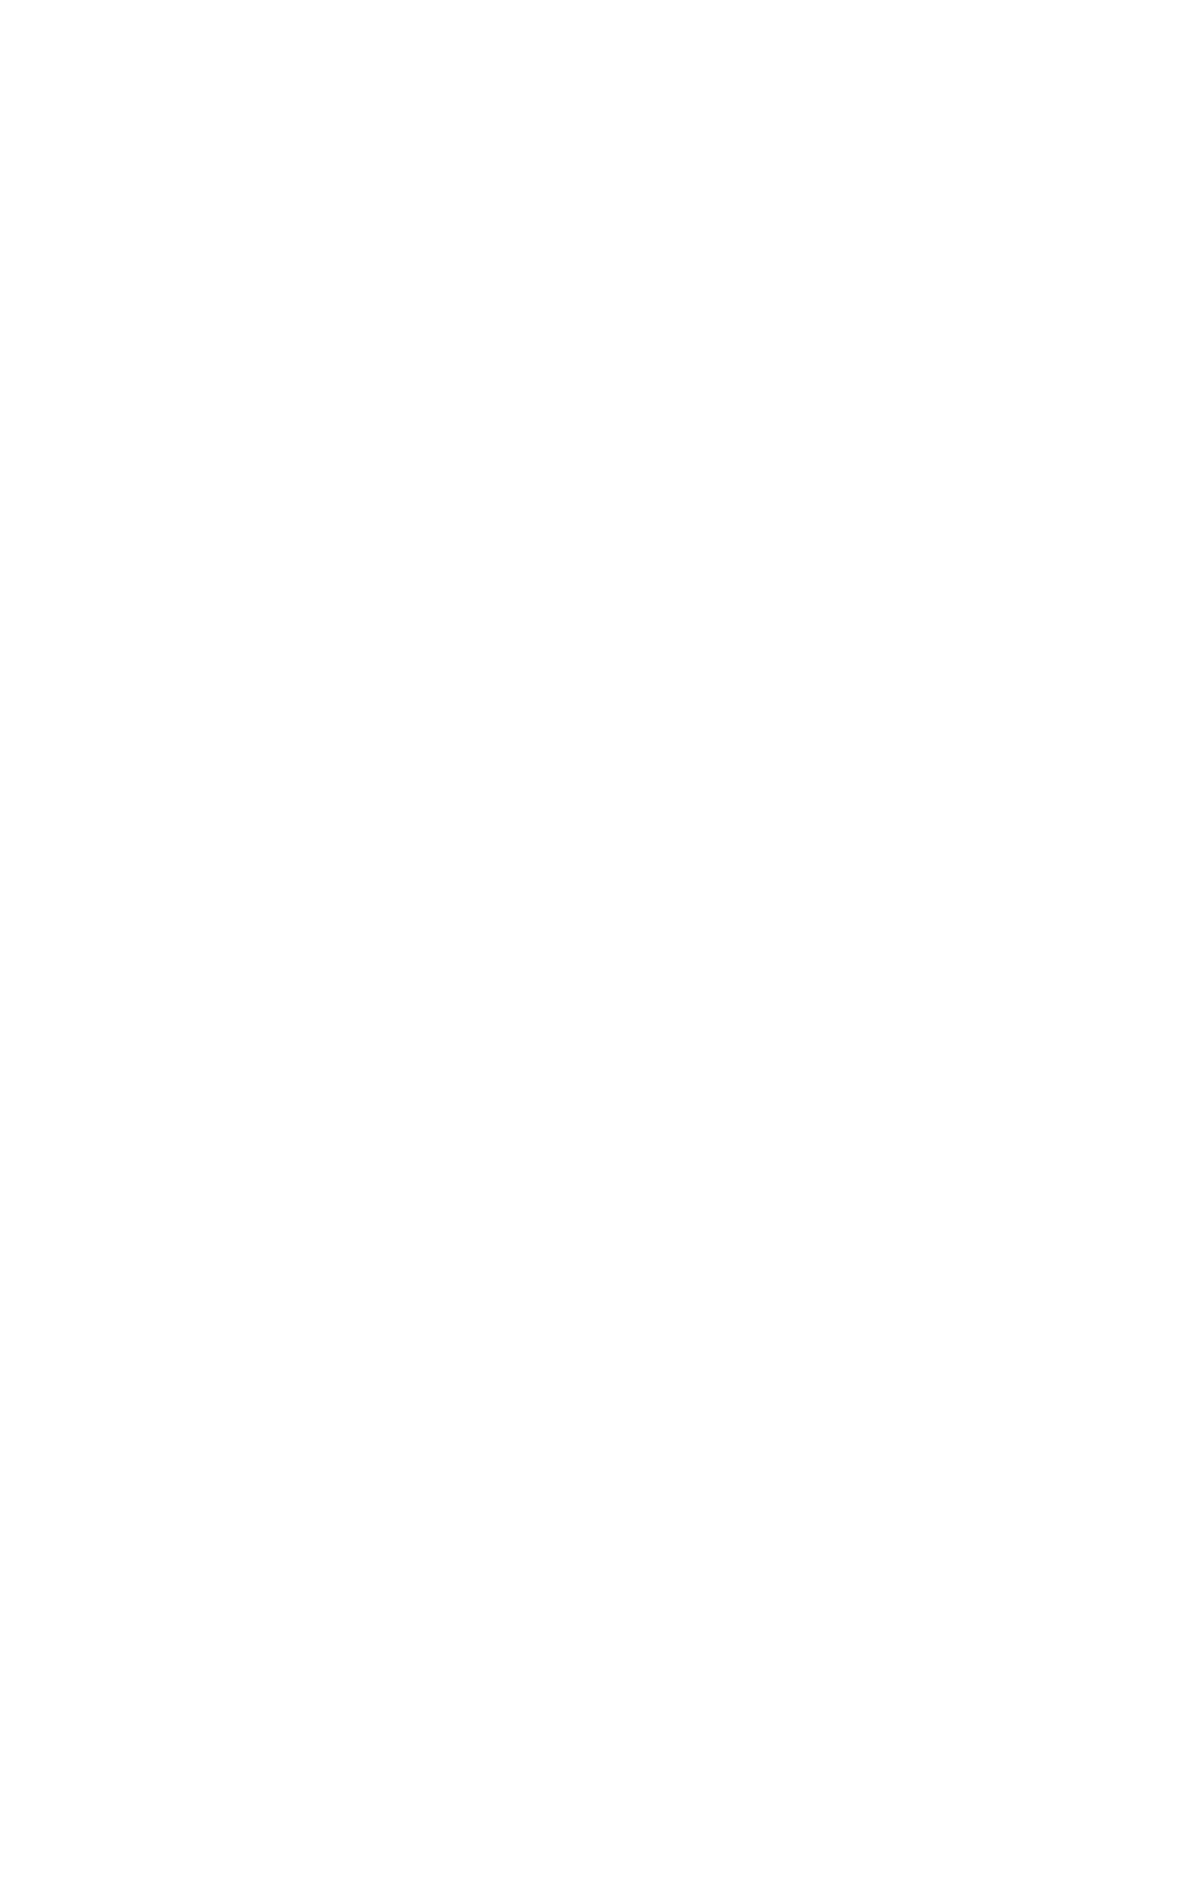 Unmatched balancing solution